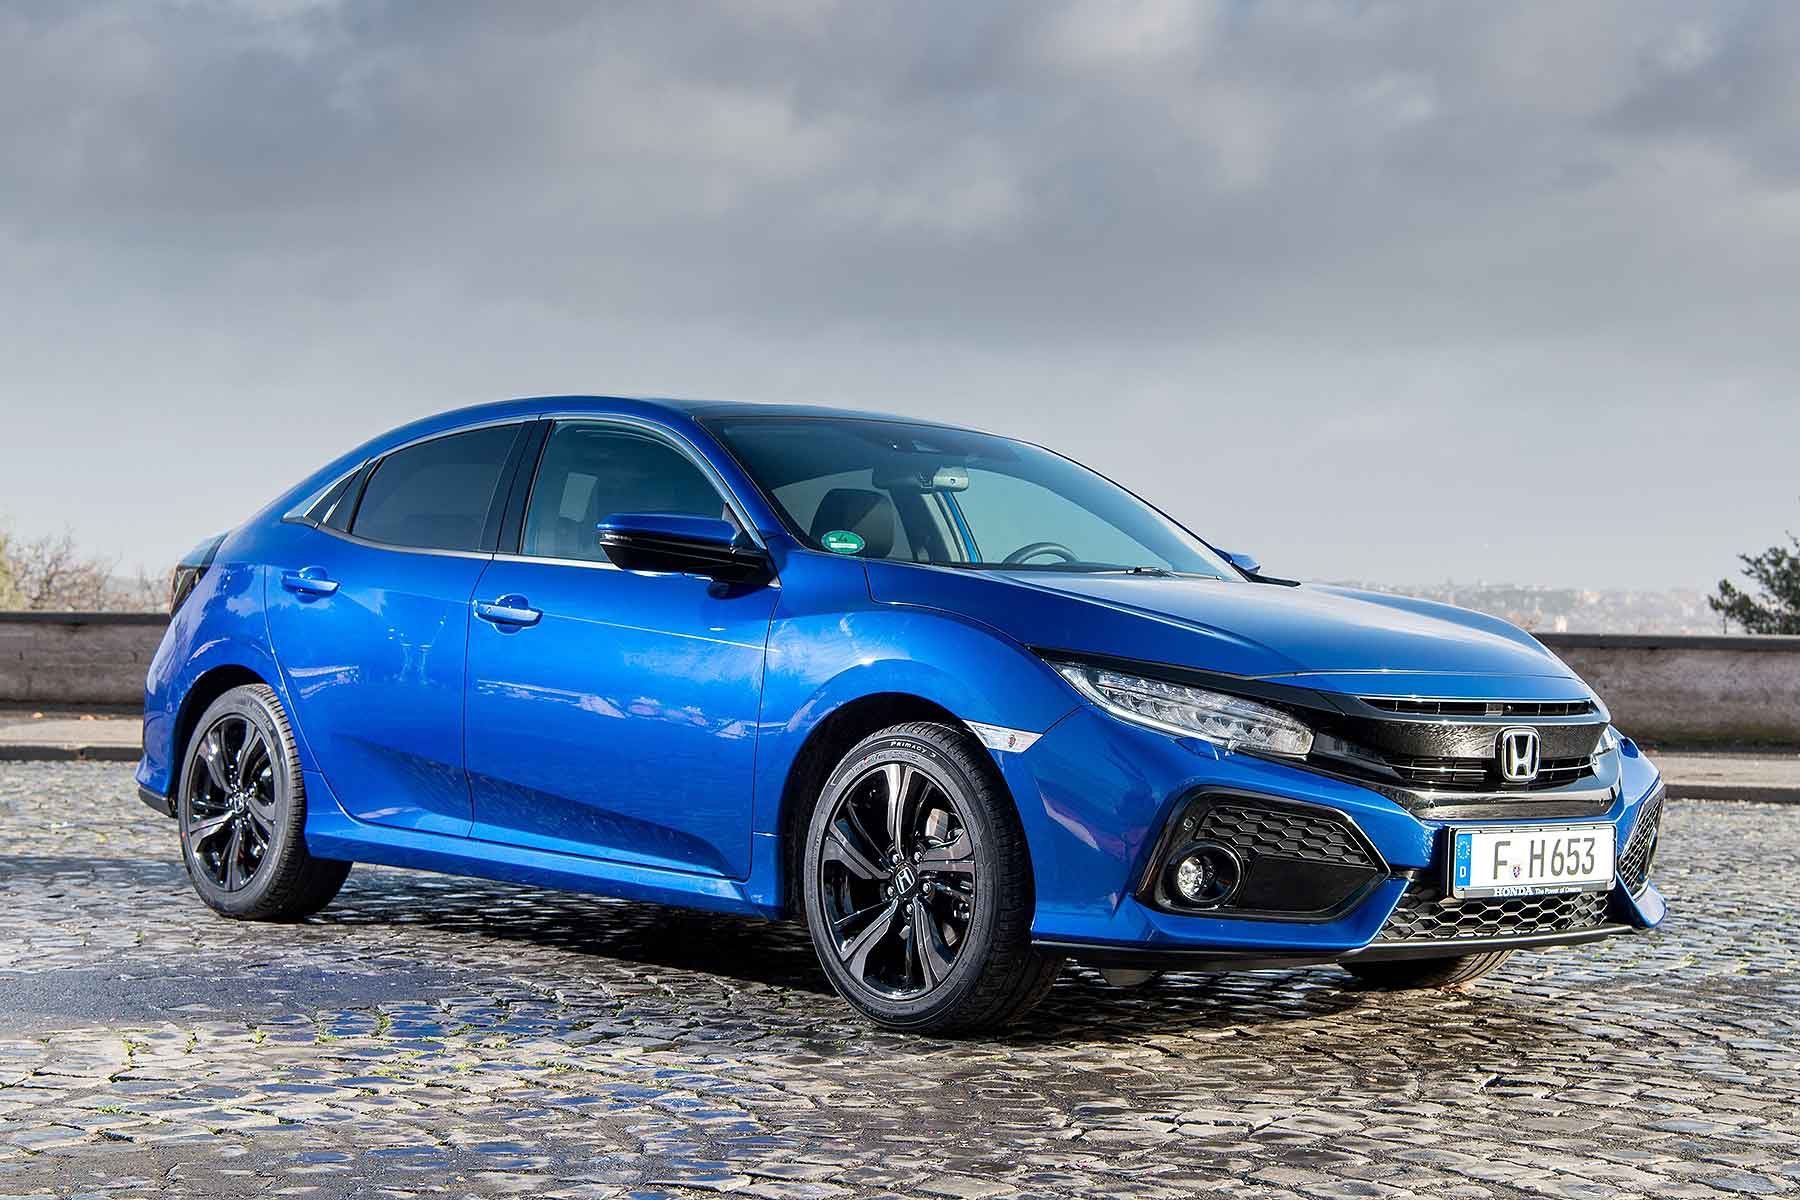 New Honda Civic Diesel 2018 >> 2018 Honda Civic I Dtec Diesel First Drive Review This Diesel S No